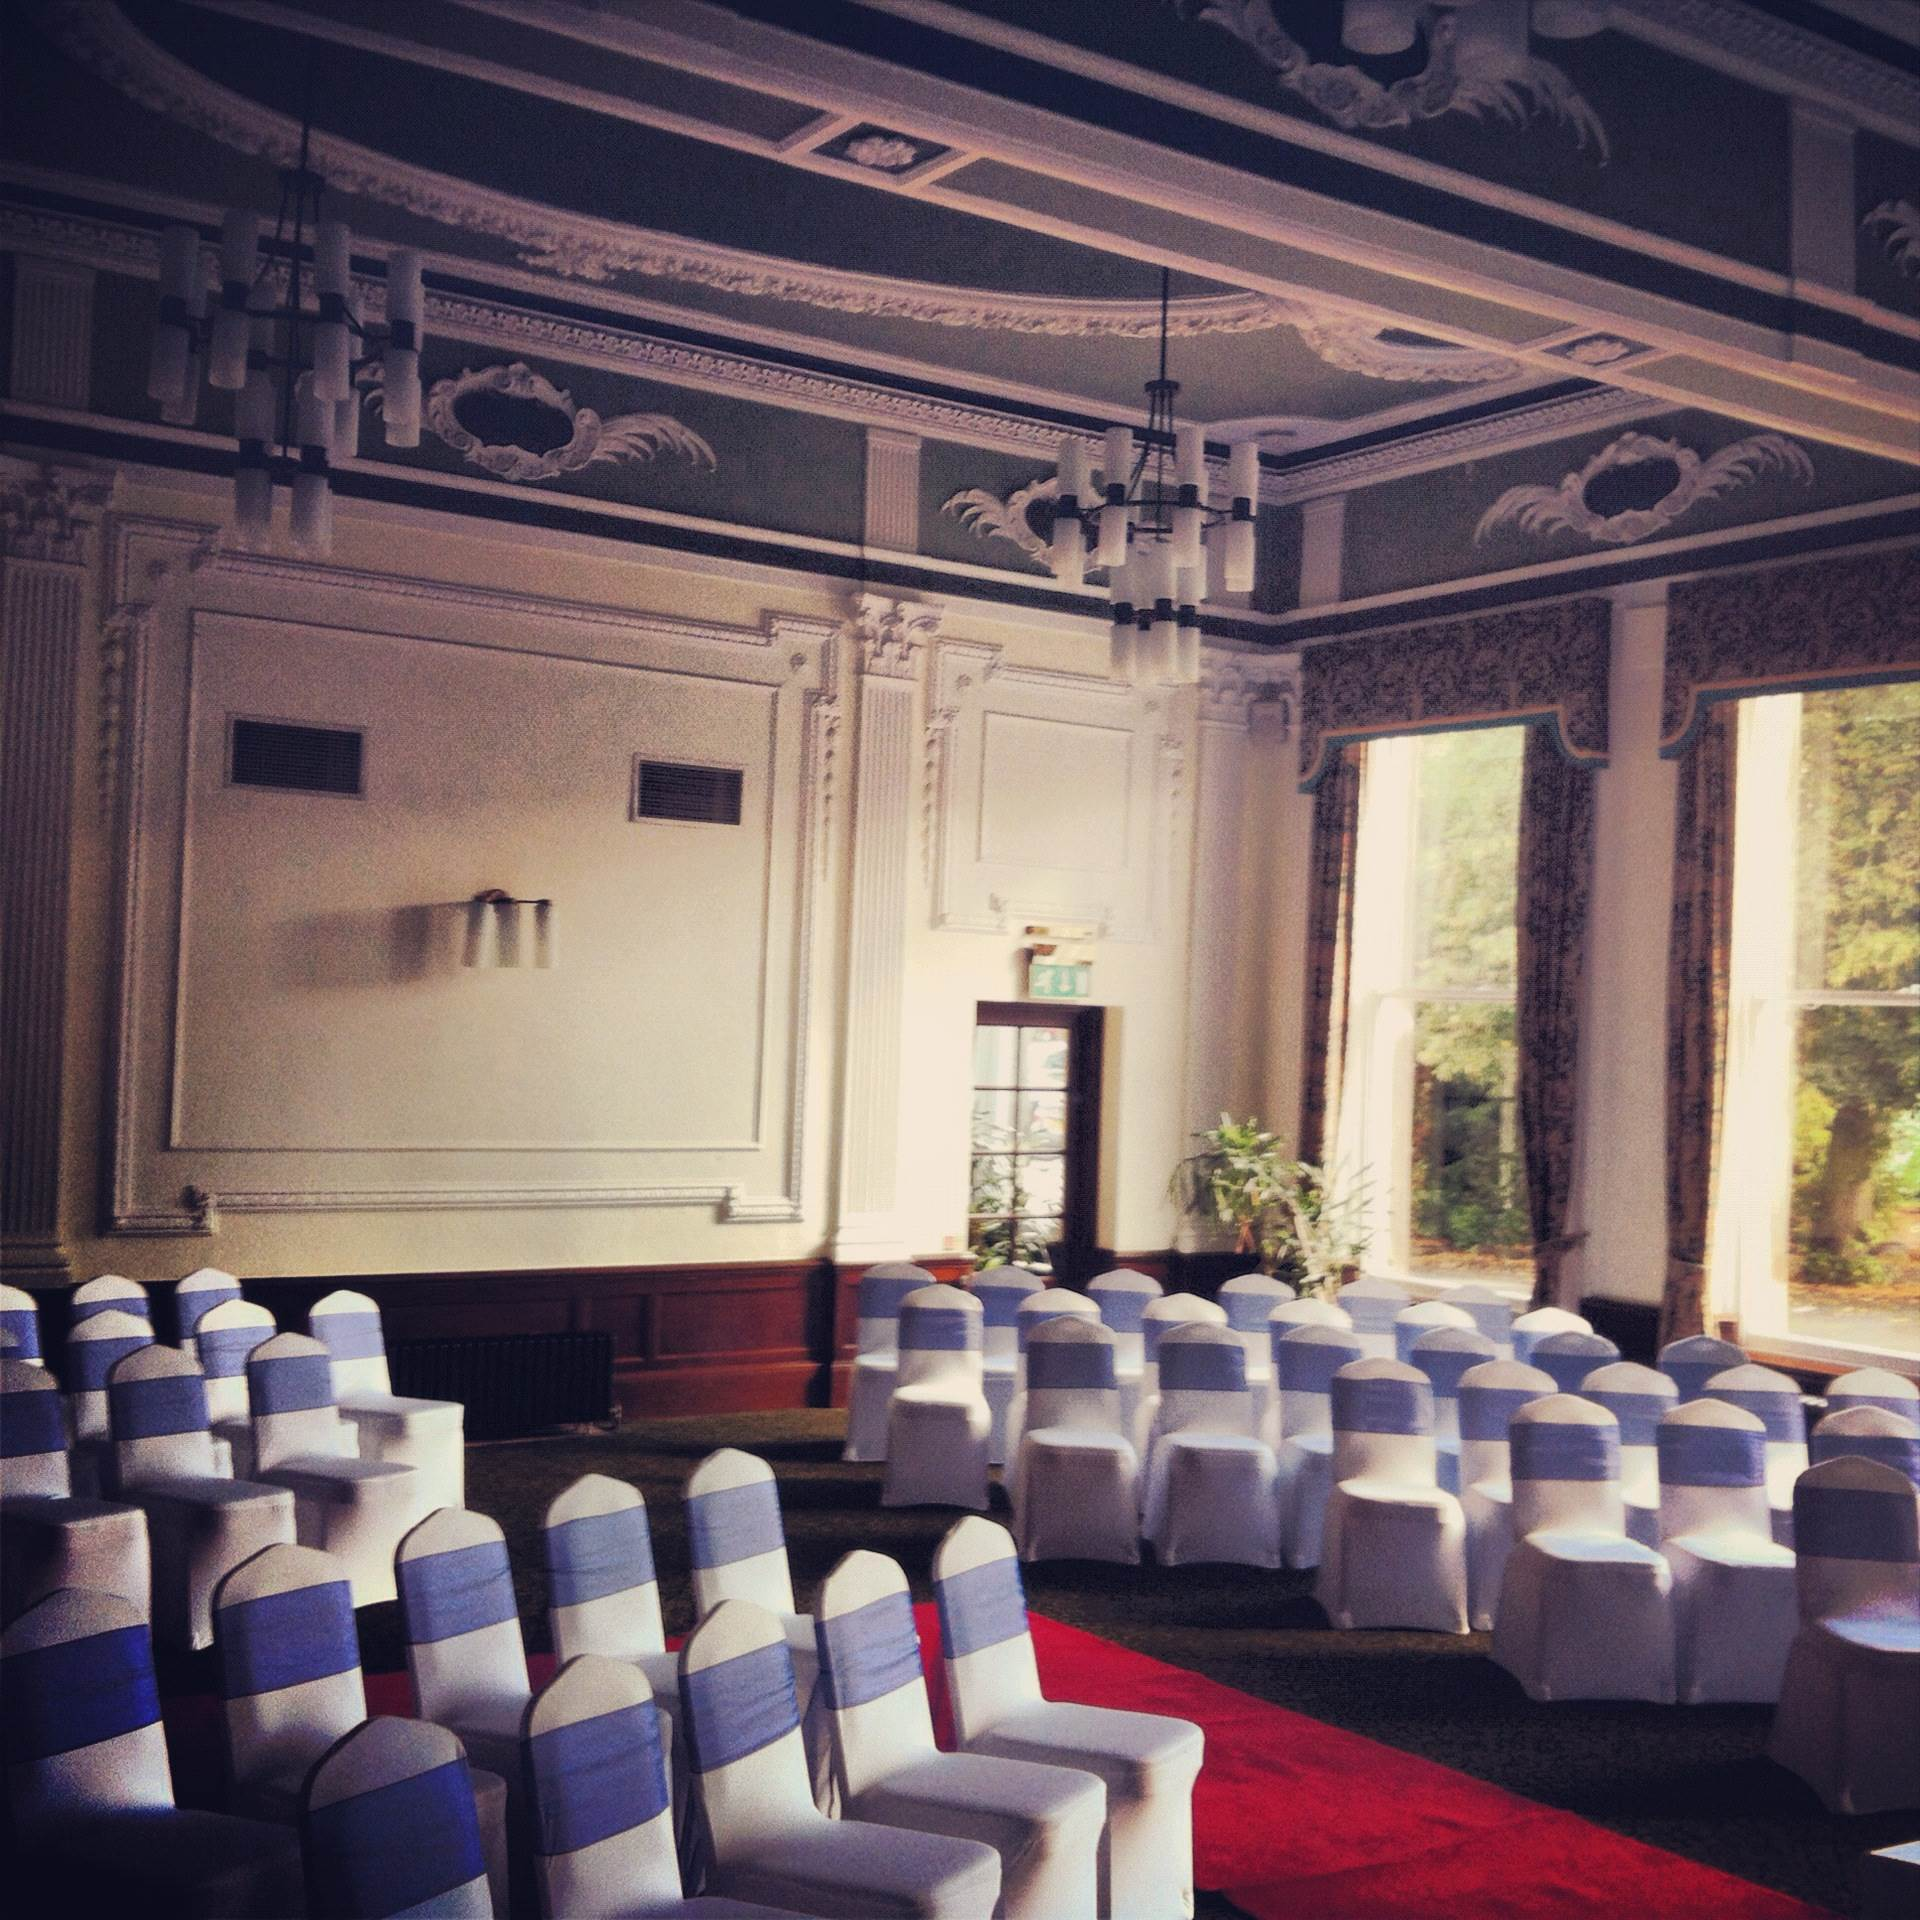 Cedar Court Hotel in Harrogate as featured on The National Vintage Wedding Fair blog